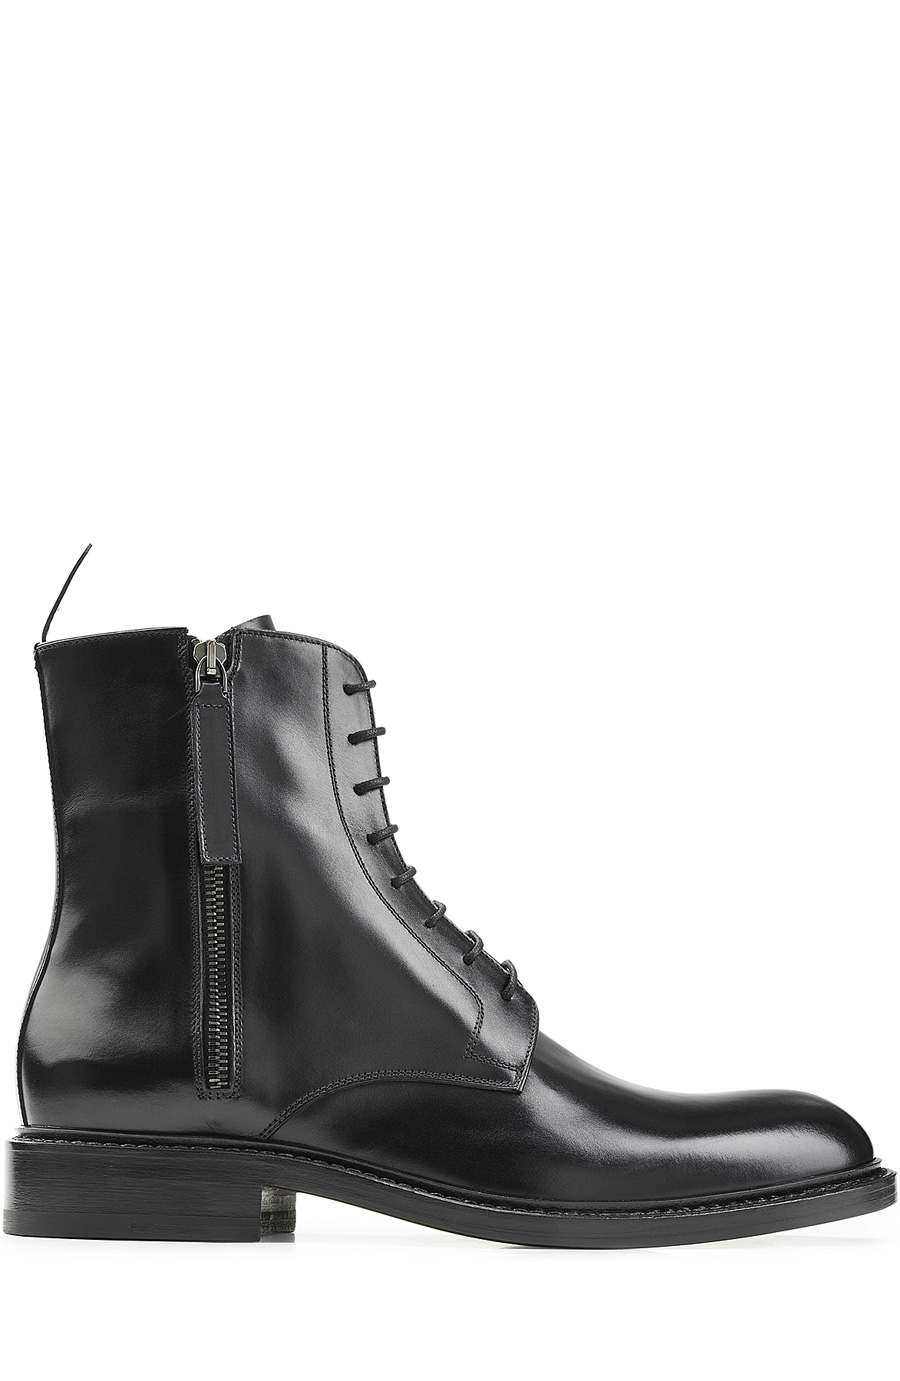 Jil Sander Leather Square-Toe Boots Store 2018 Cheap Price fhxvay